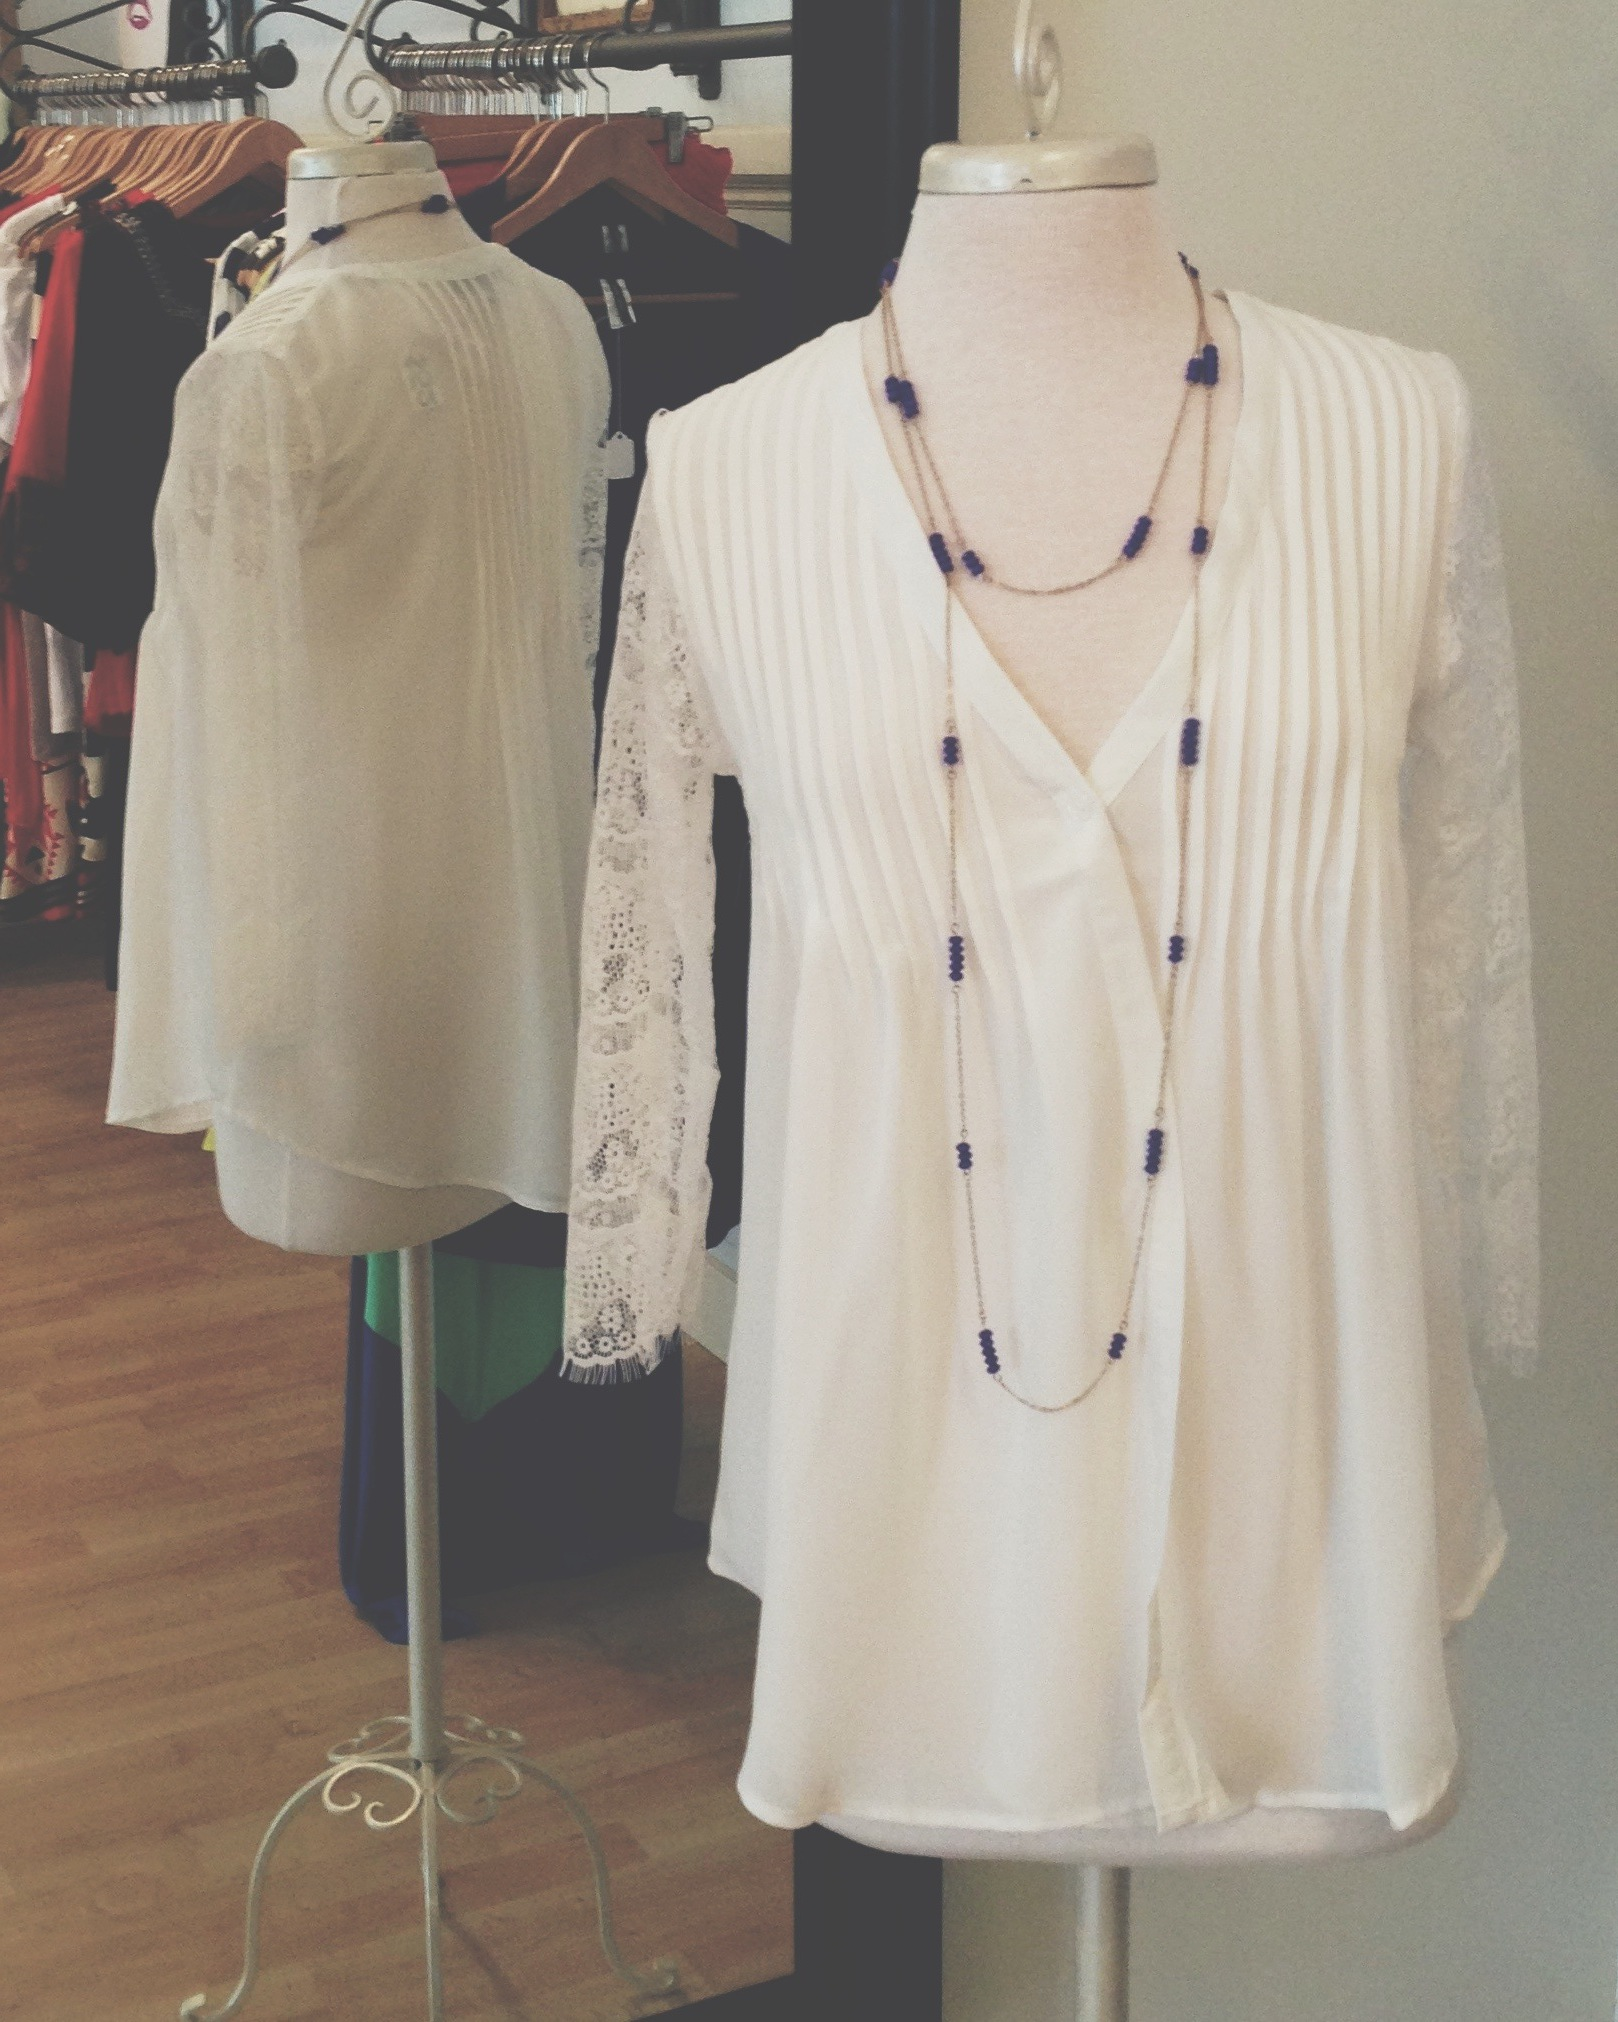 Sheer top and lace 3/4 length sleeves, with pretty details on the front.